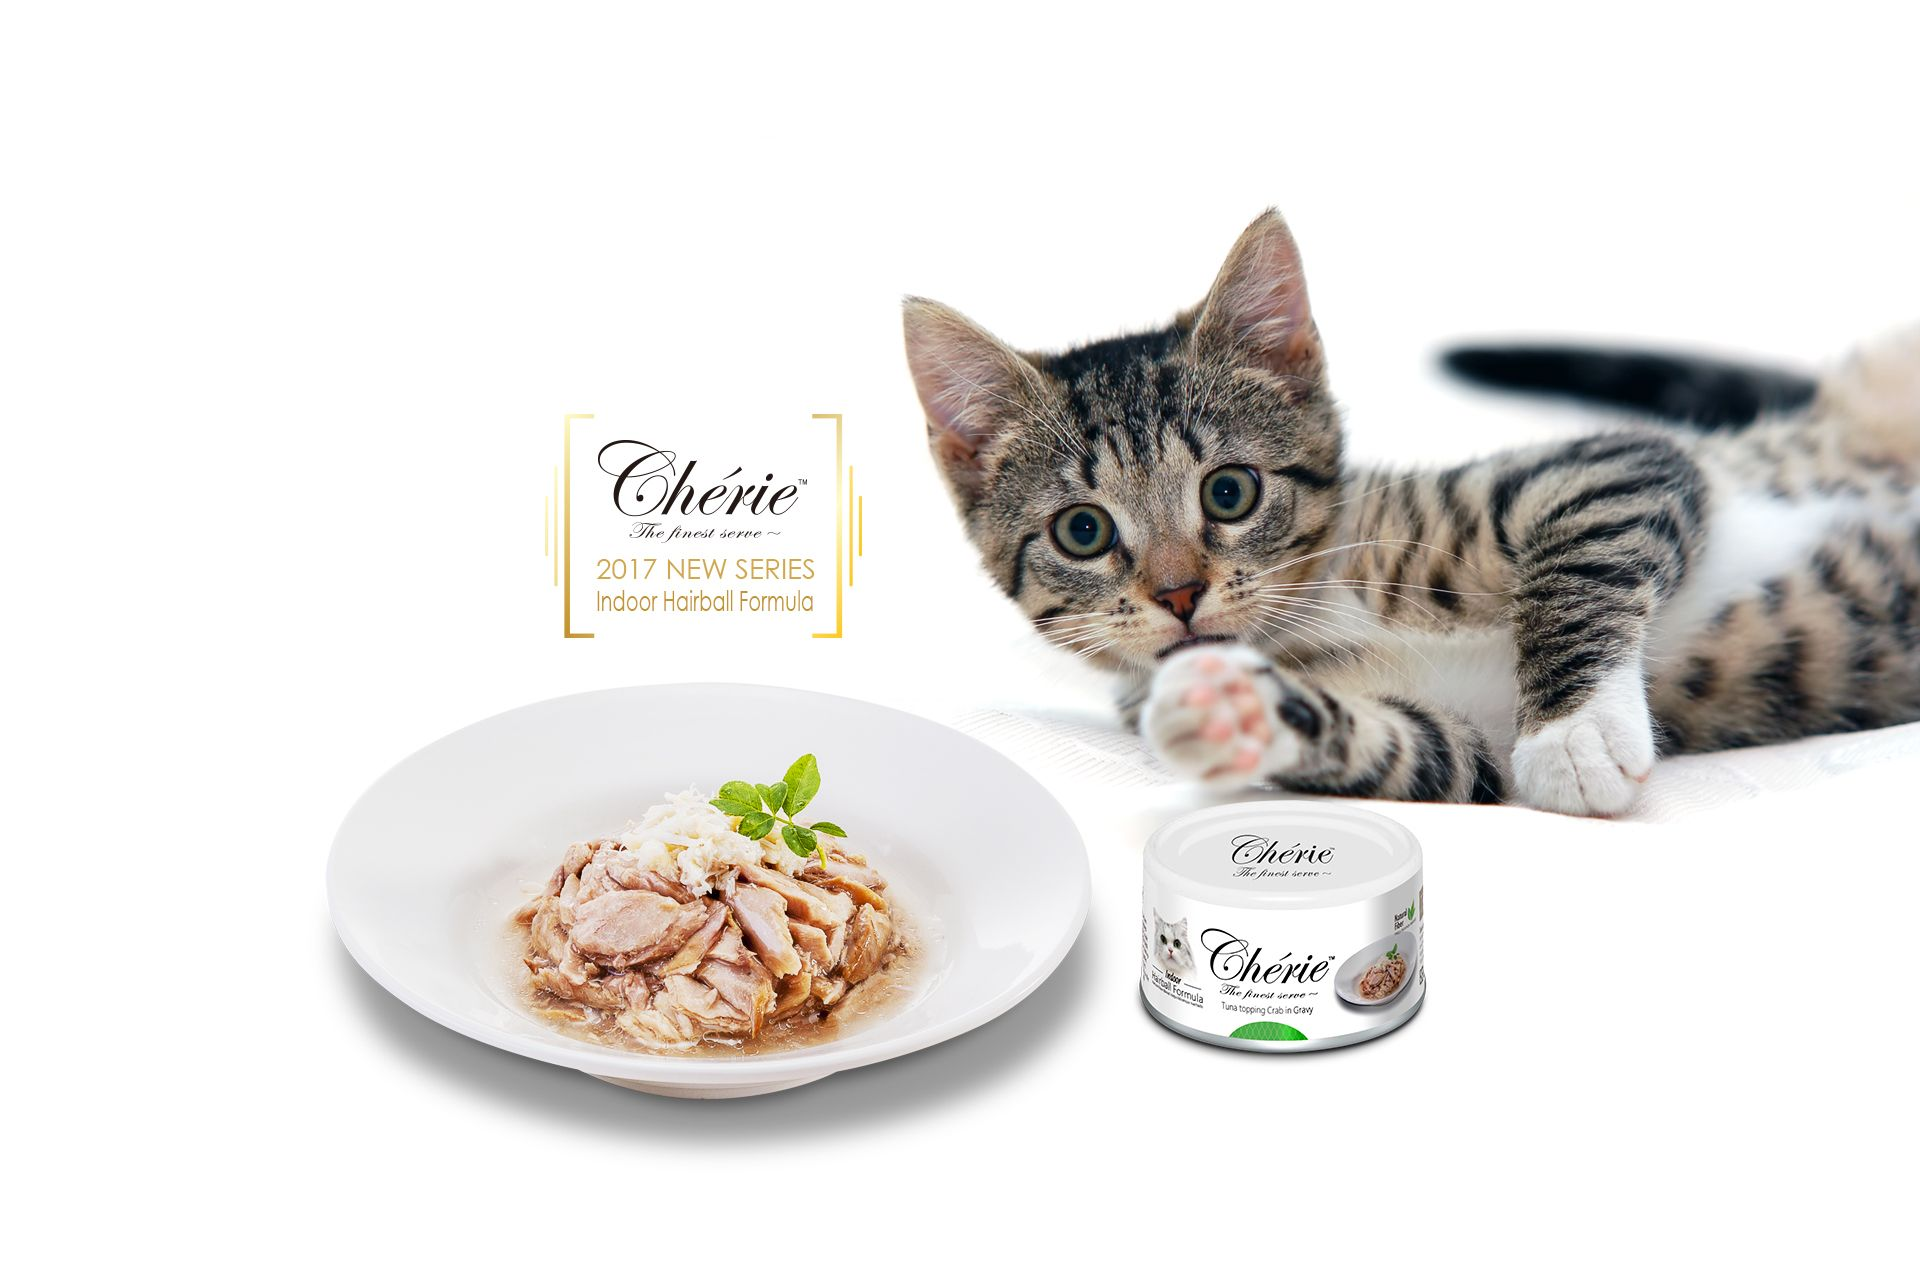 Pettric Cherie Hairball Control Series Cat Wet Food Cute Cats Kittens Cutest